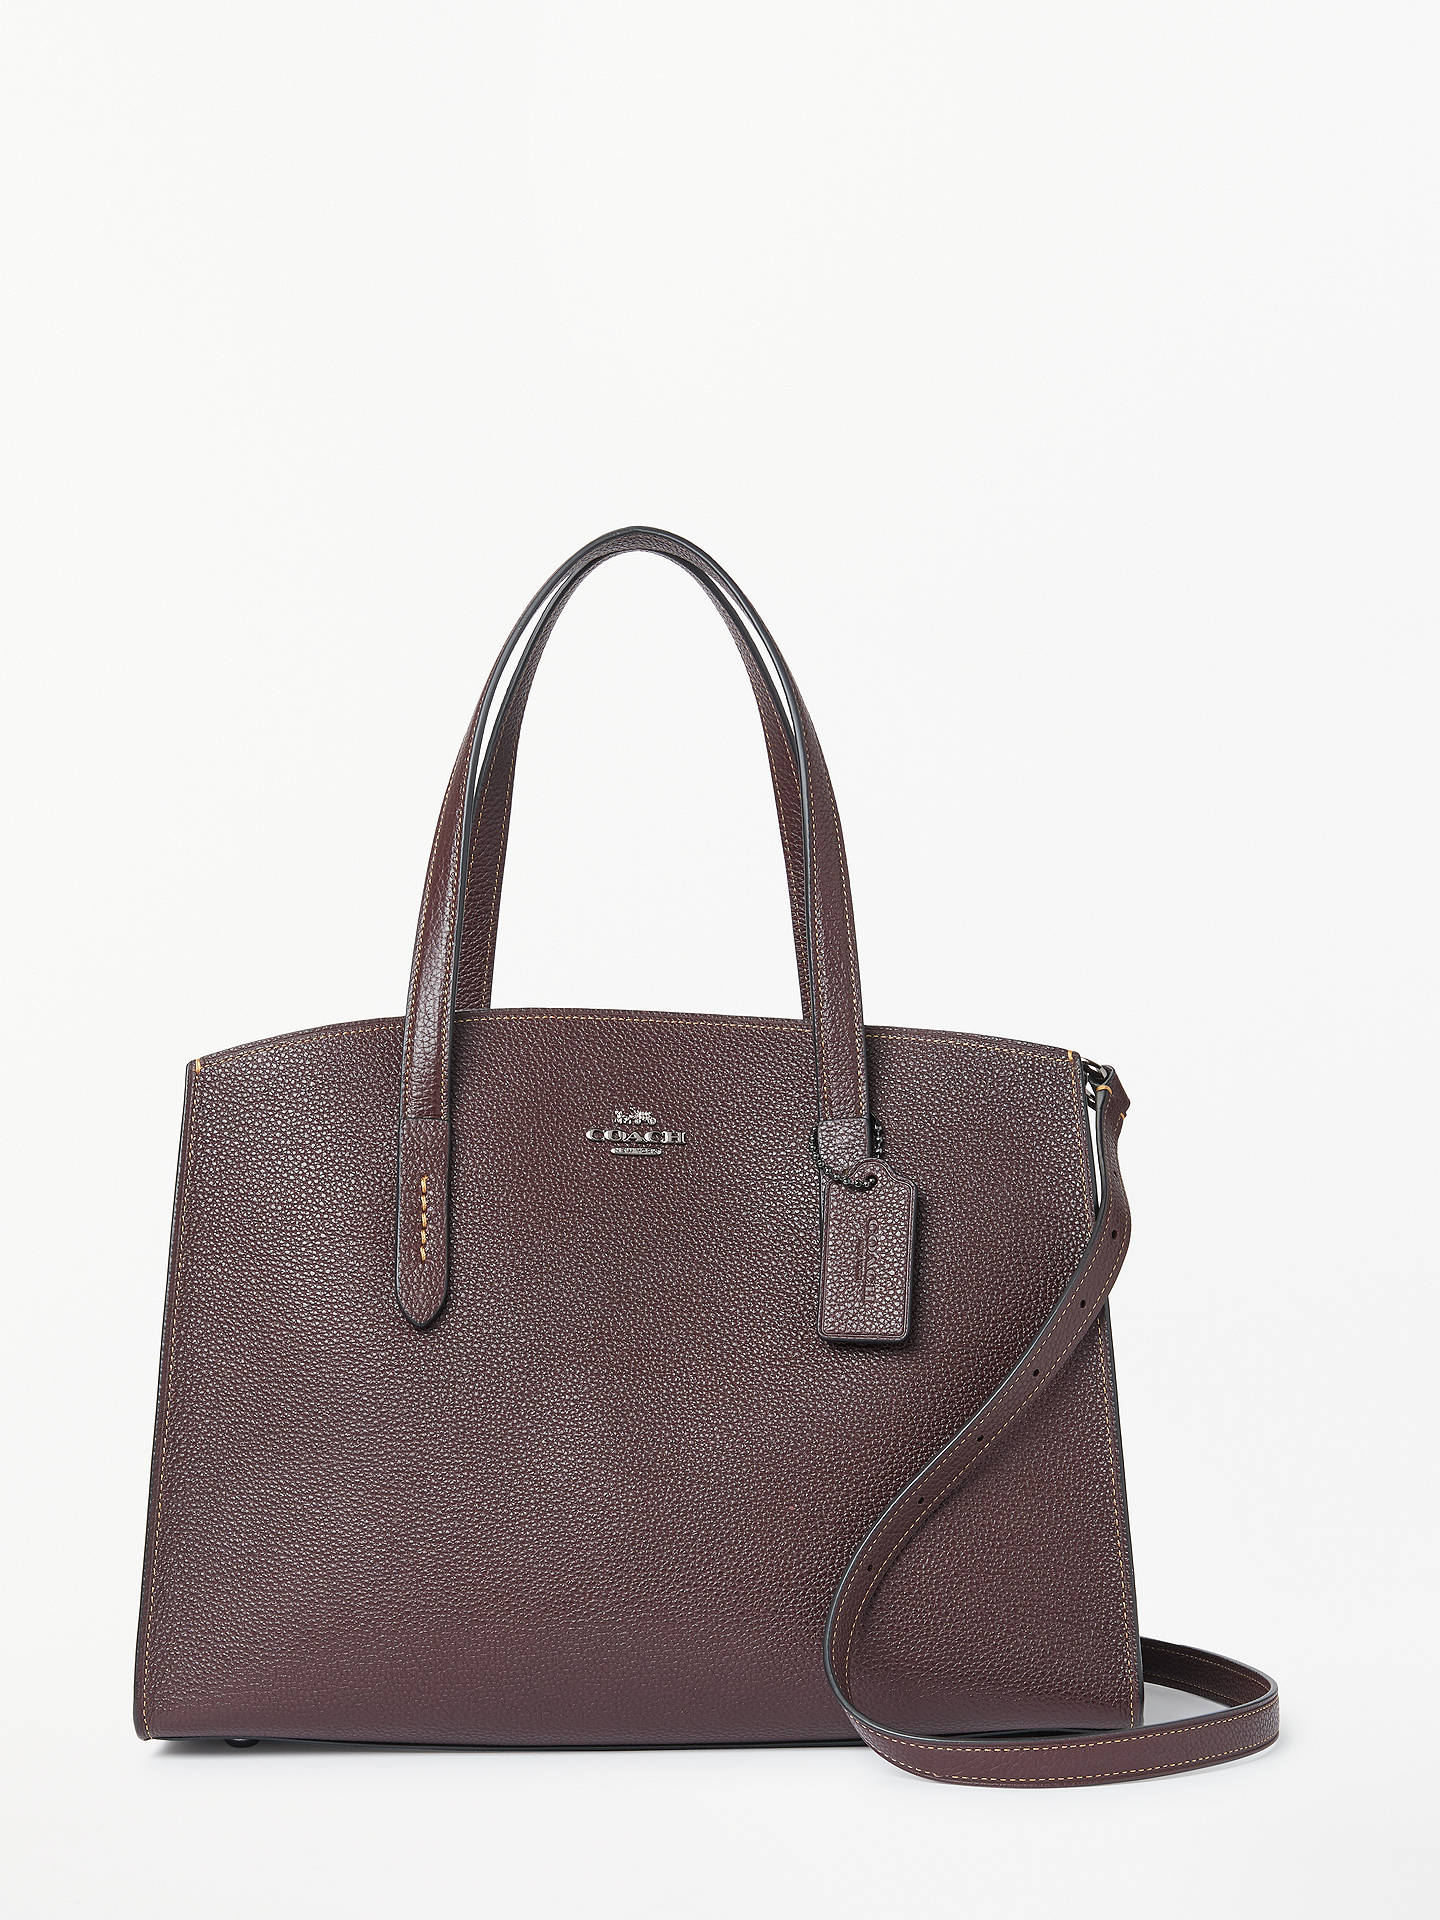 Coach Charlie Leather Carryall Tote Bag Oxblood Online At Johnlewis